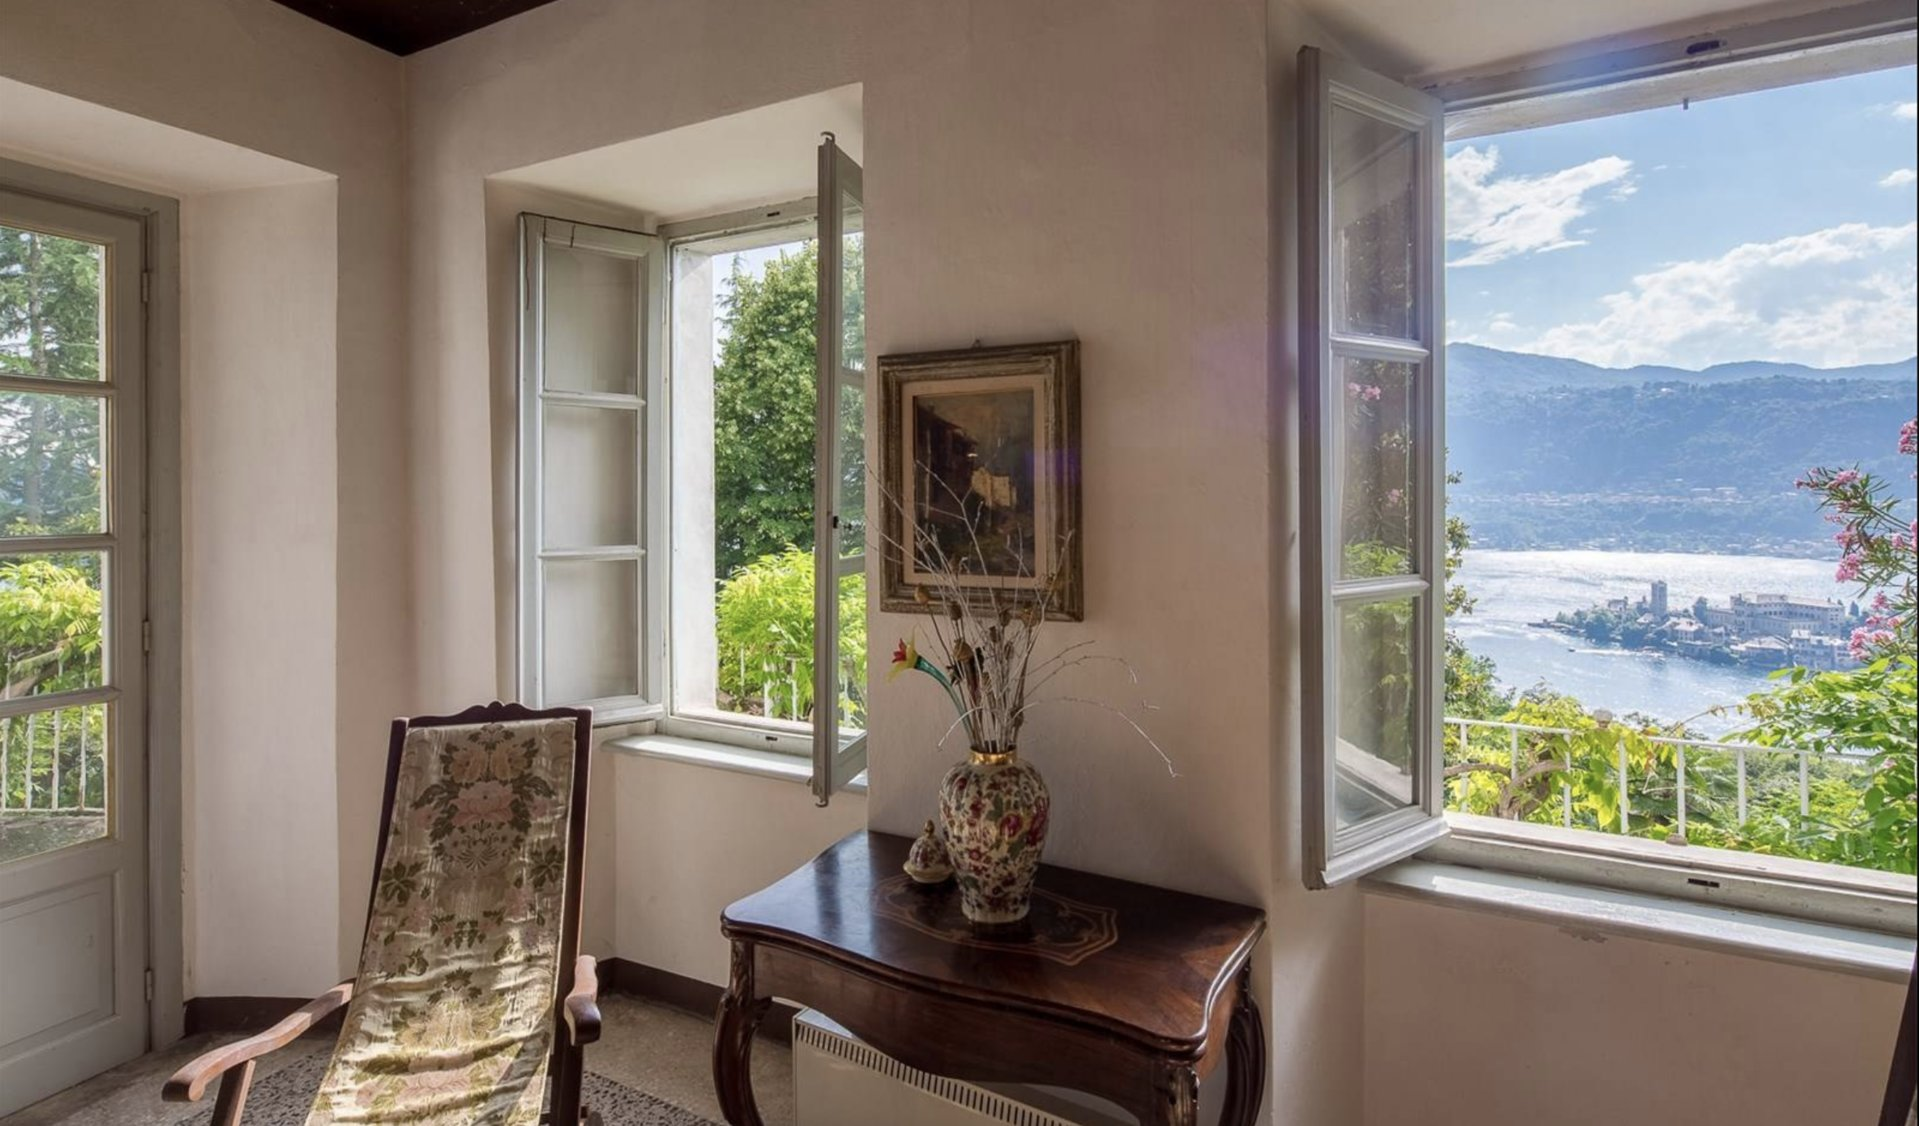 Historic property former convent for sale in Orta - lake view room